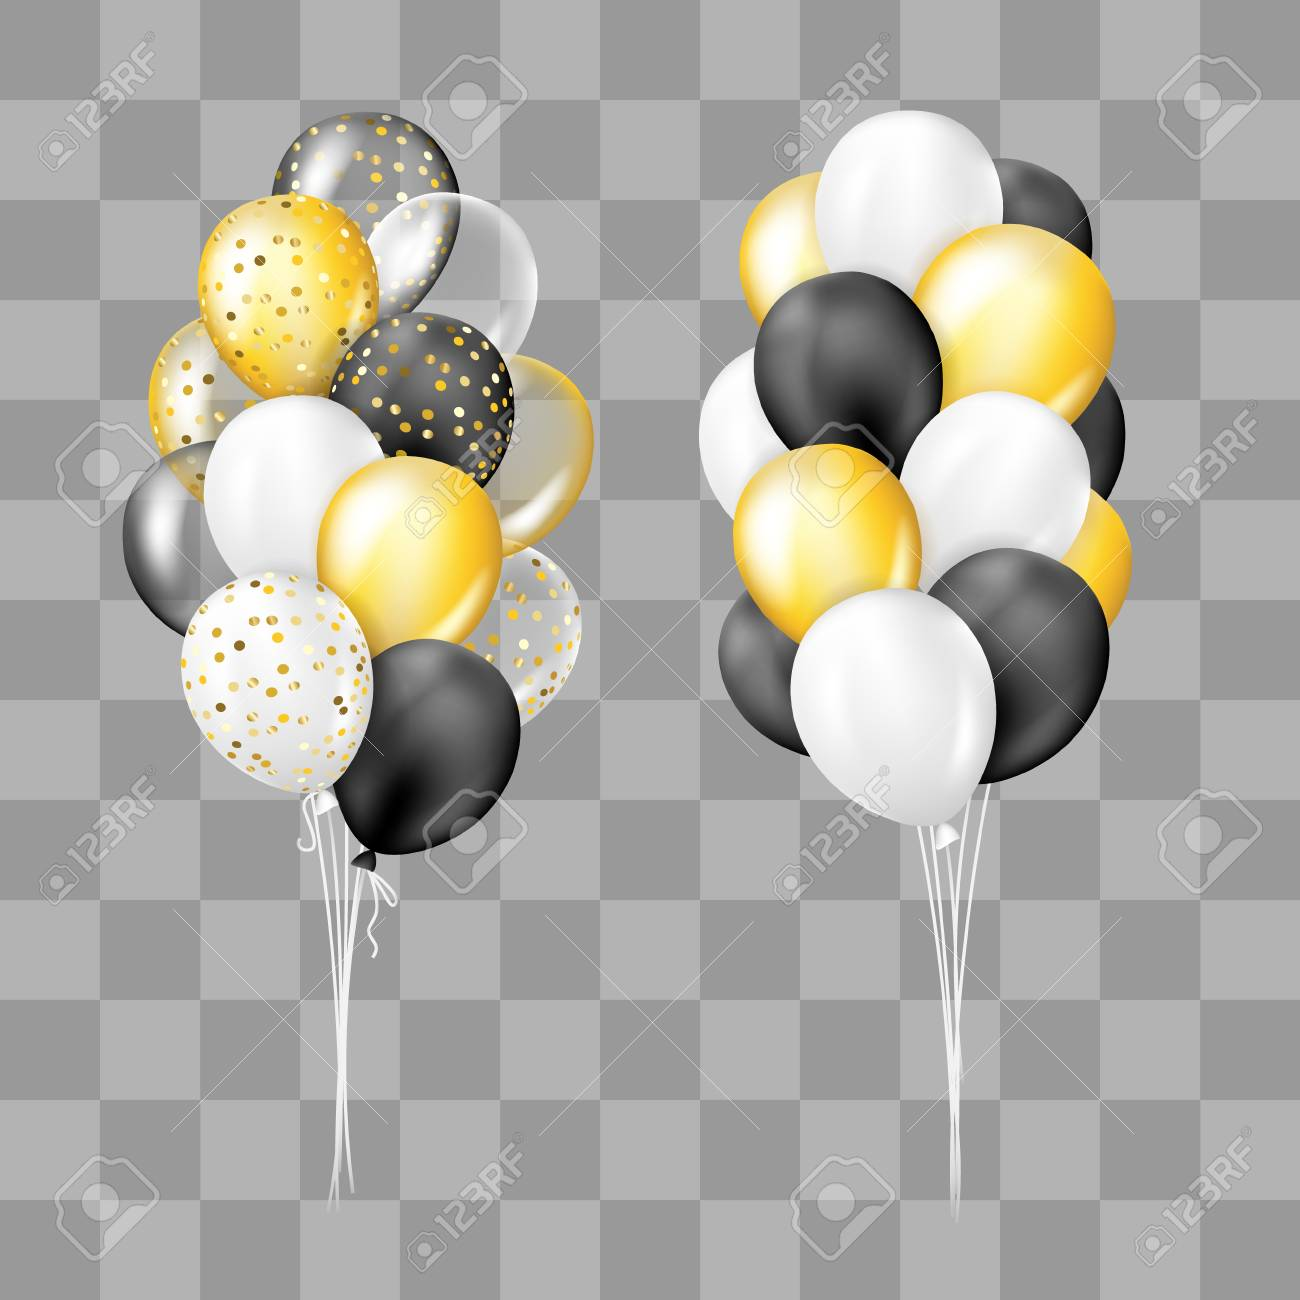 5747 Balloons free clipart.